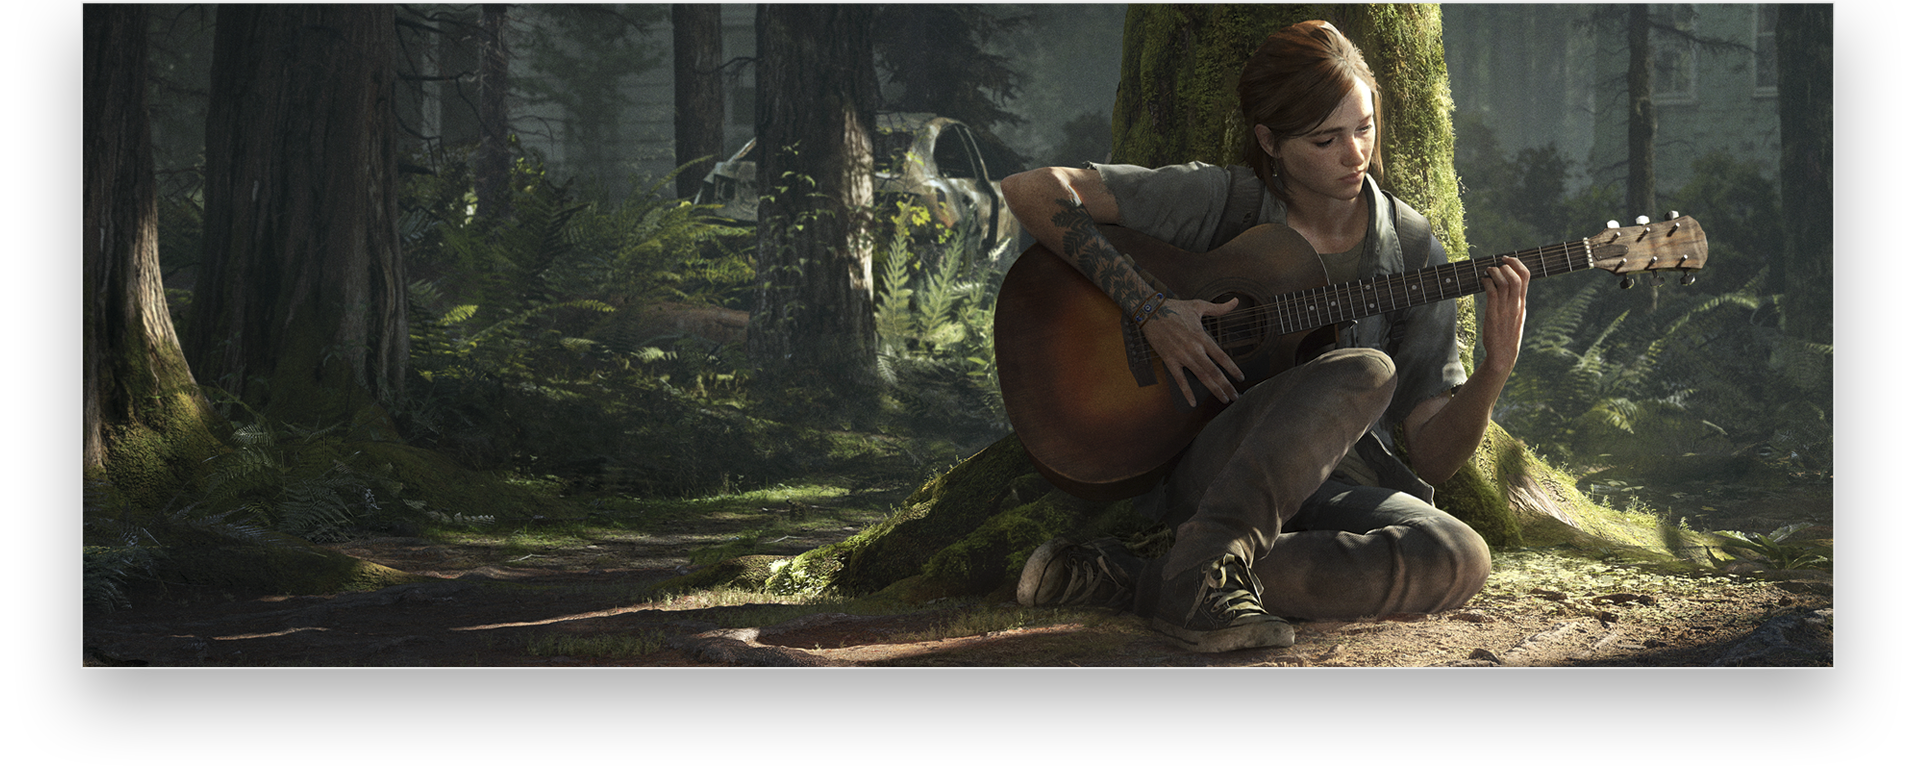 The Last of Us Part 2 key art